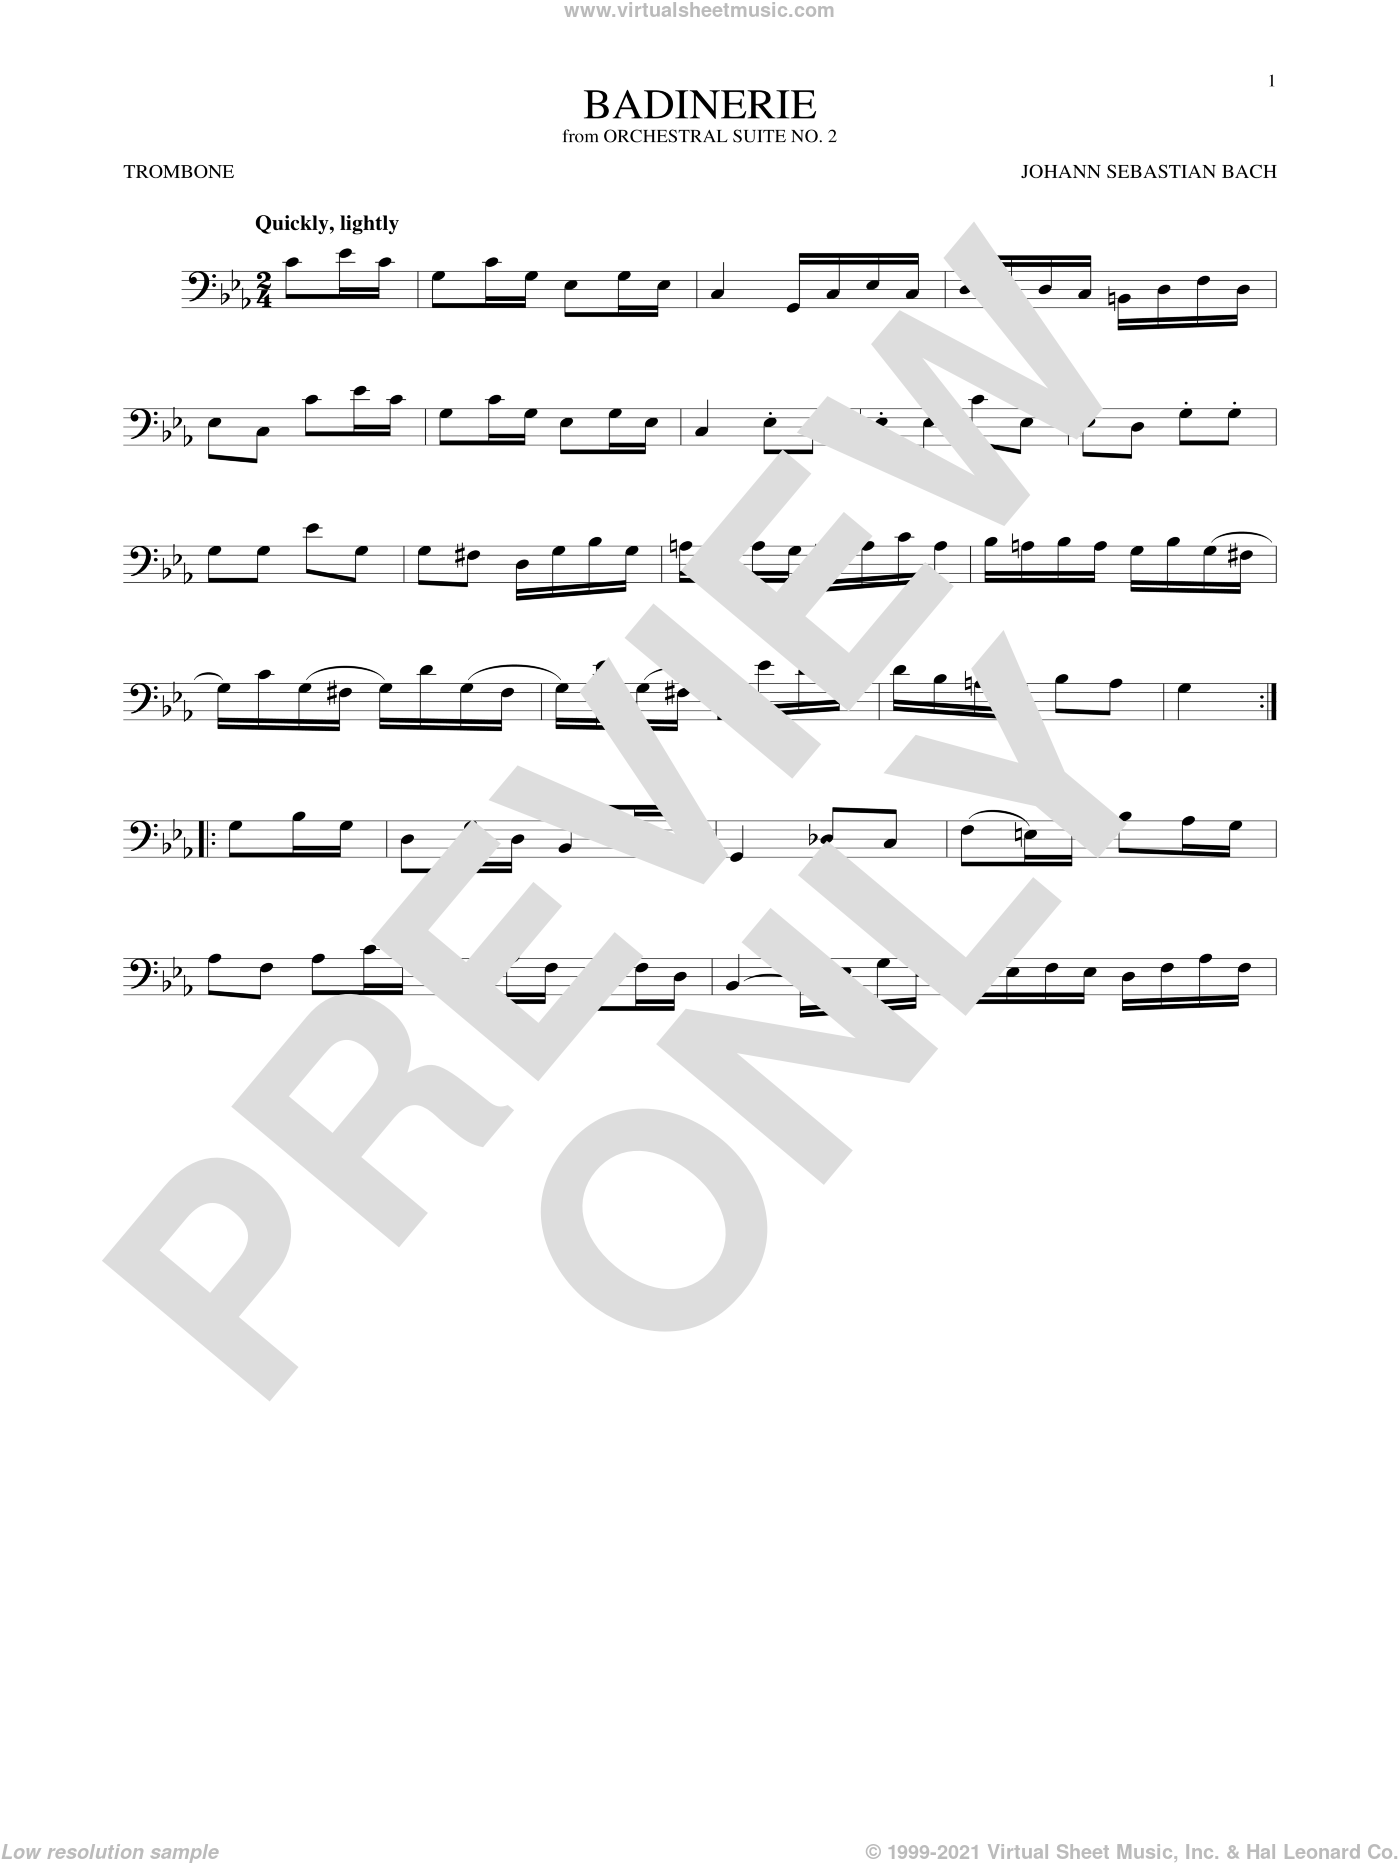 Badinerie (Suite No. 2) sheet music for trombone solo by Johann Sebastian Bach, classical score, intermediate skill level